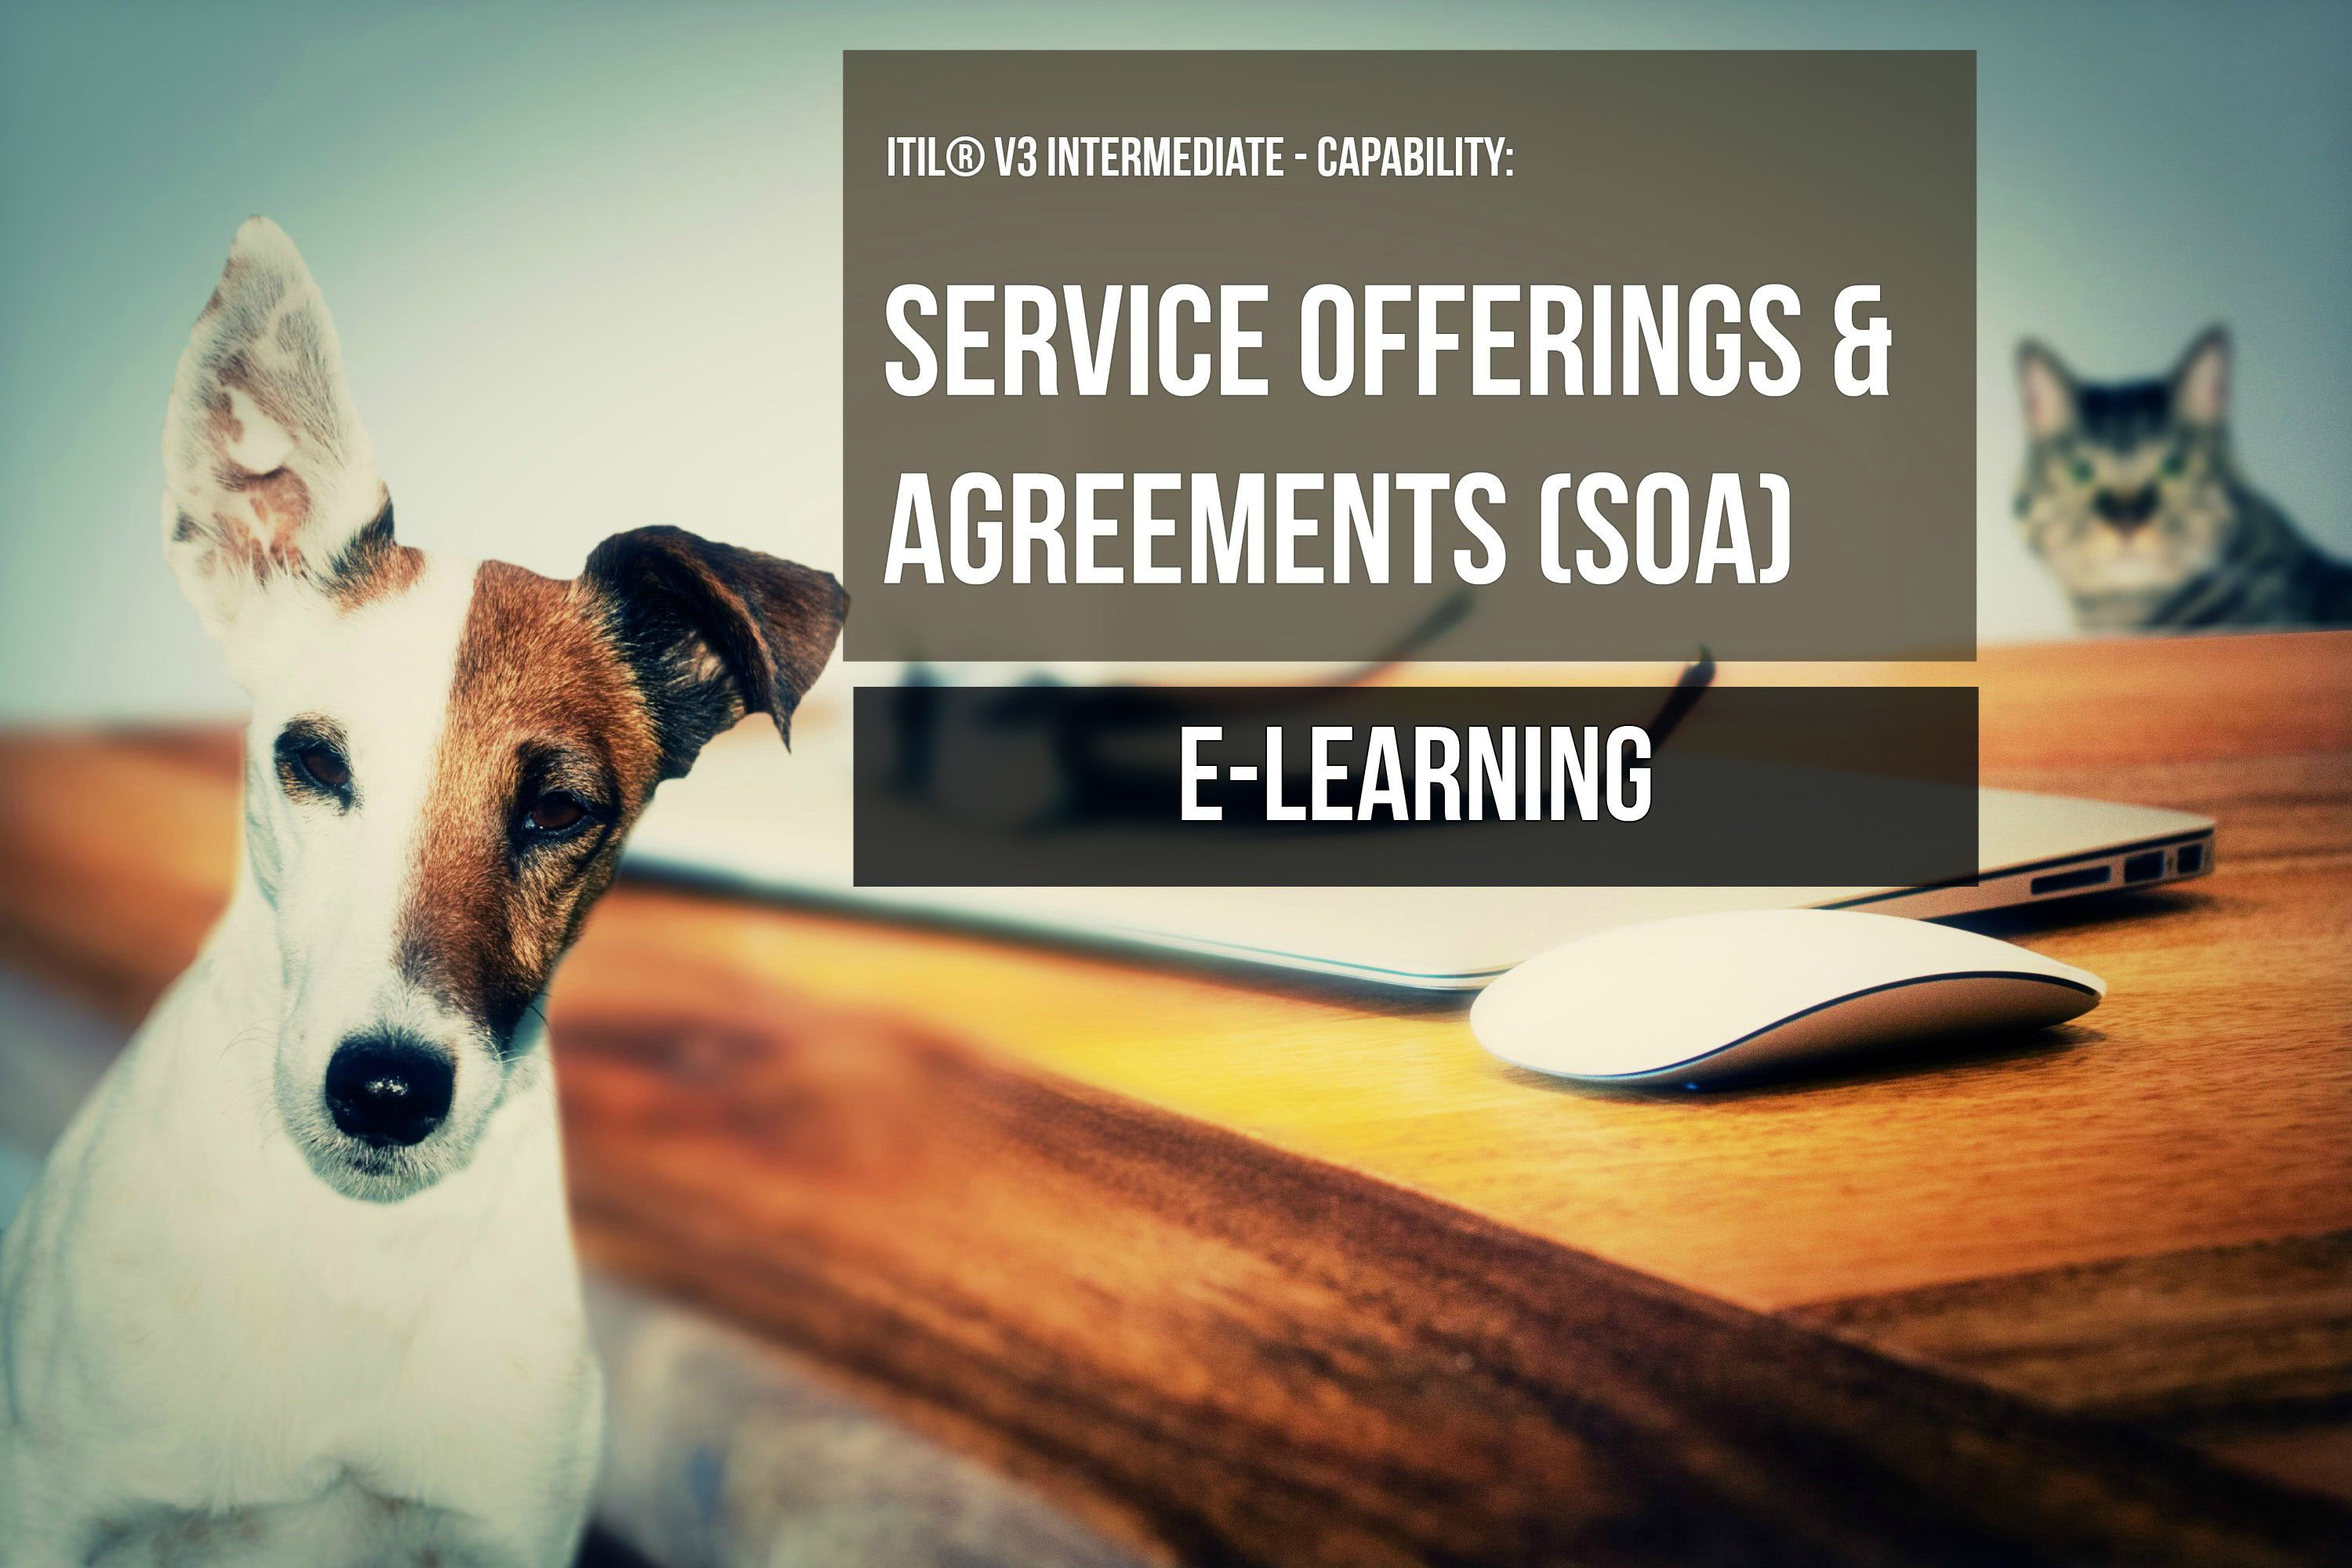 ITS Partner - ITIL Service Offerings and Agreements e-learning and certification